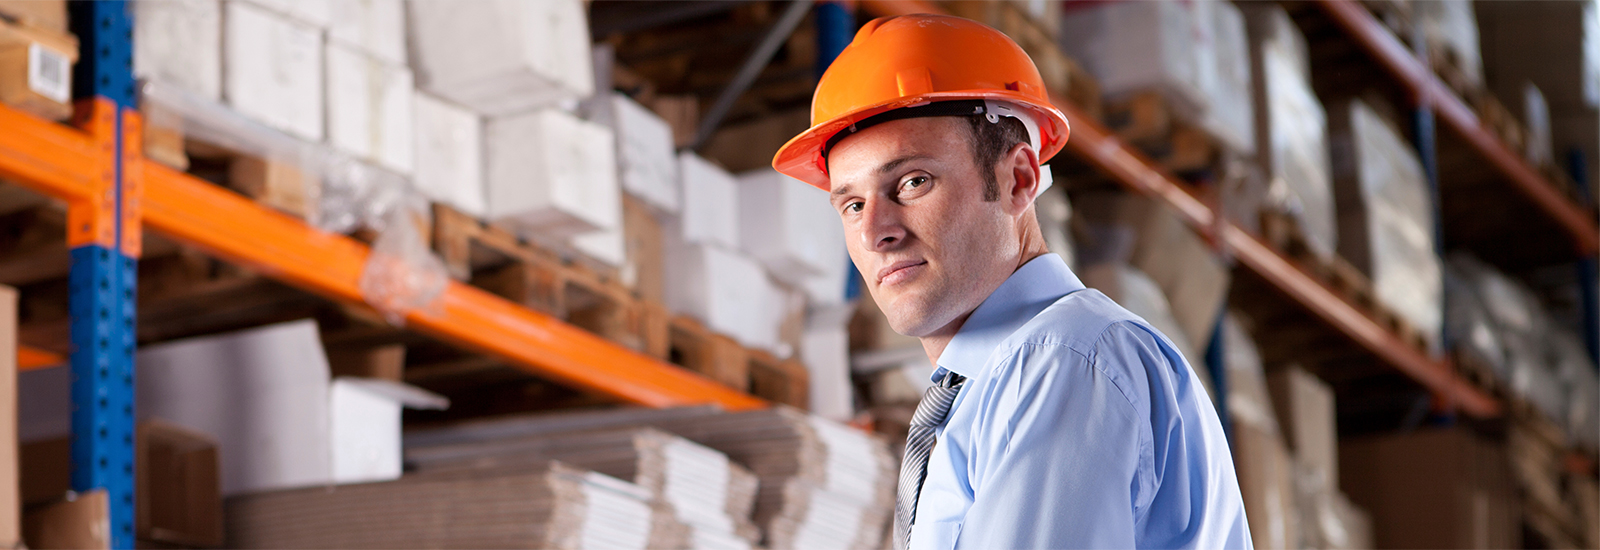 An employee at a wholesaler prepares to get the product to ship